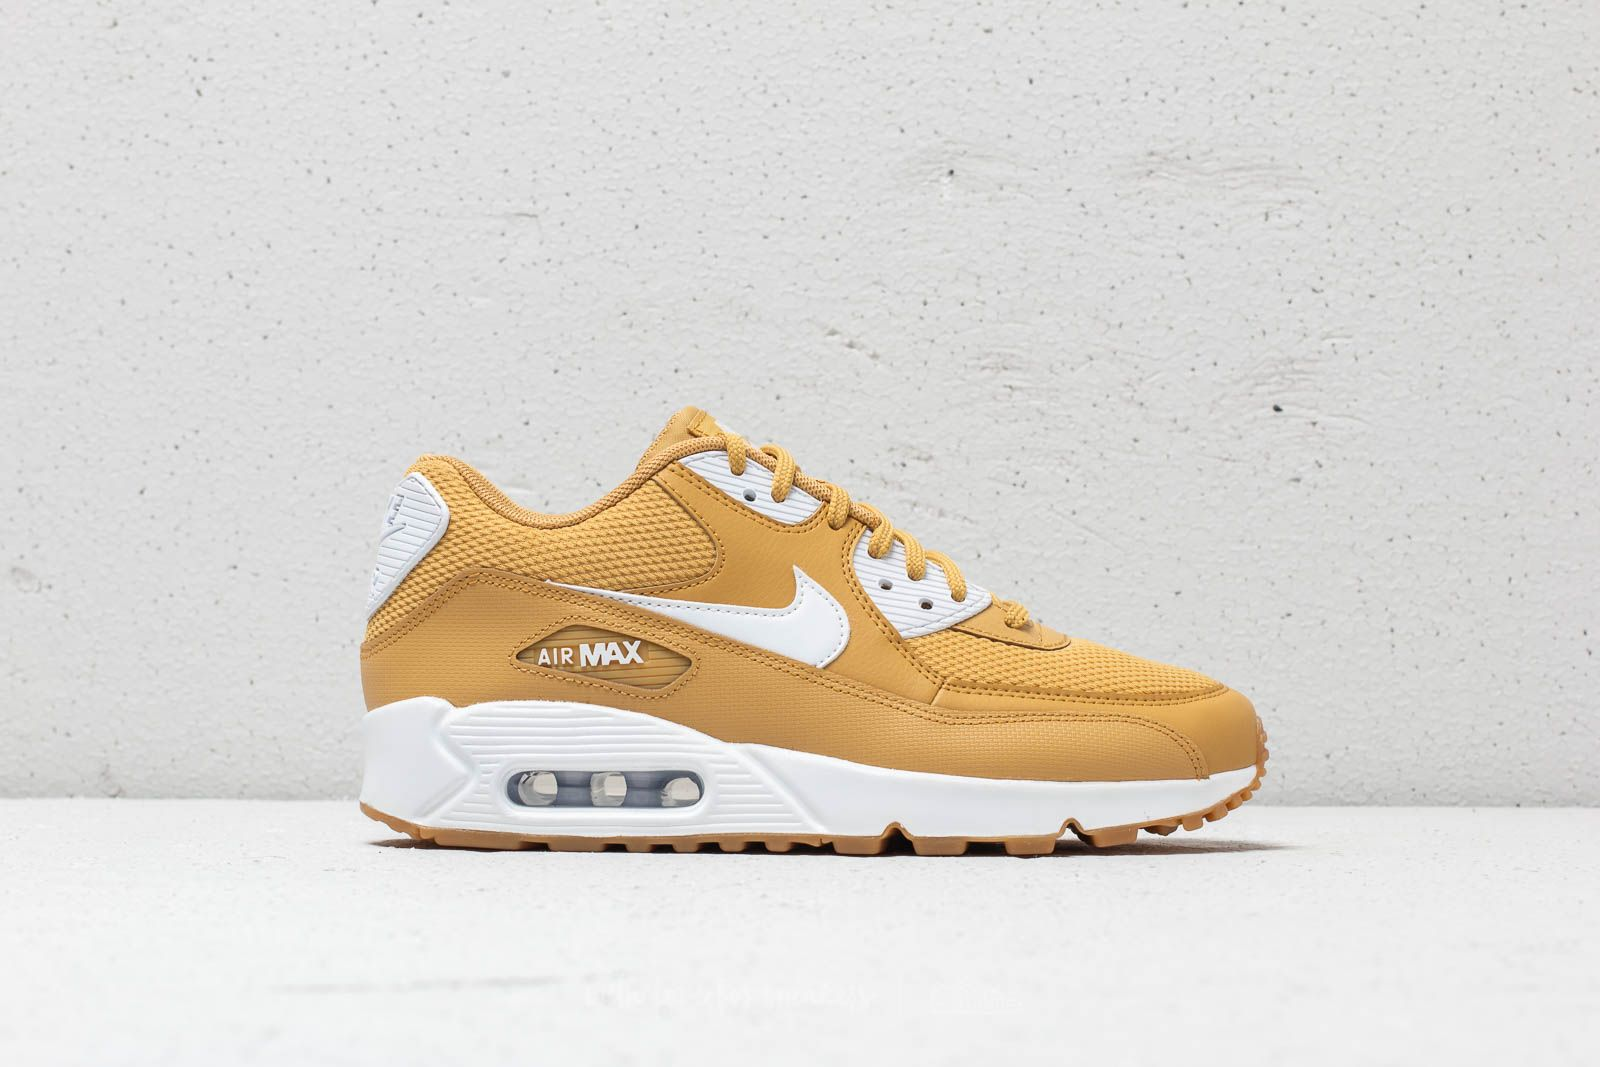 promo code ea4d5 e85d8 ... cheap nike wmns air max 90 wheat gold white at a great price 139 buy  d16aa